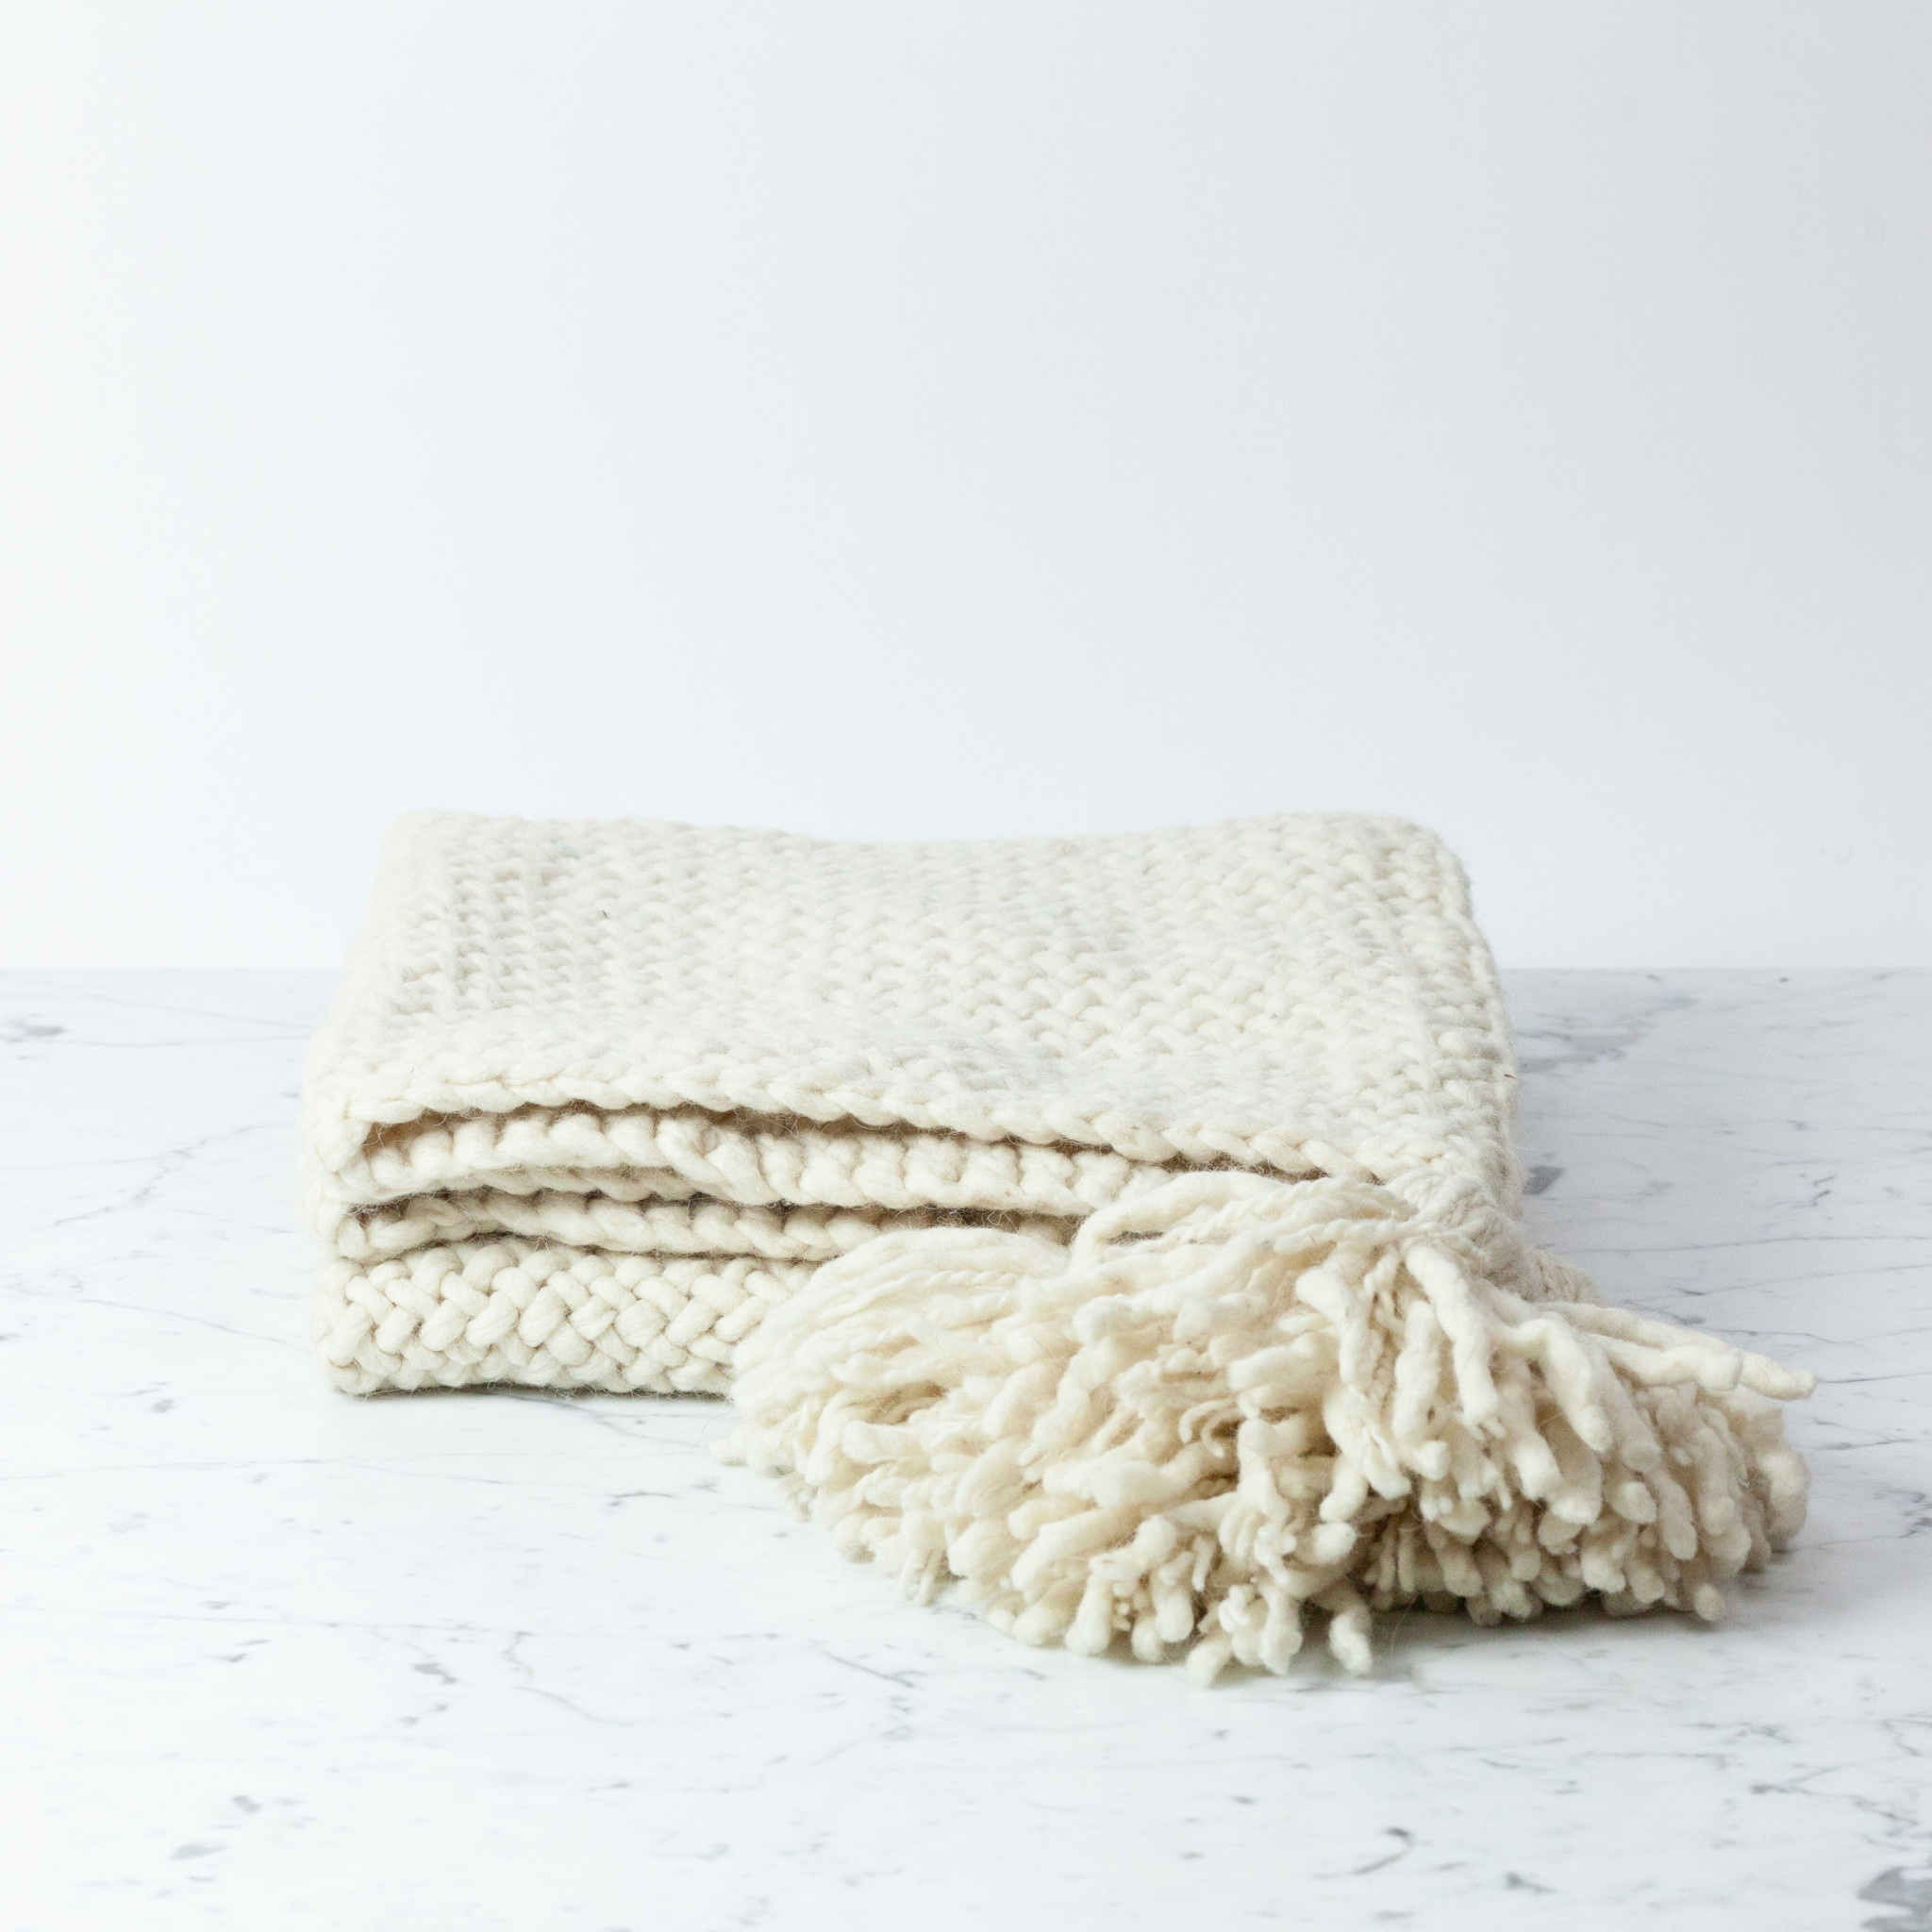 Handwoven Bayo Throw - Naturally Dyed Wool with Tassels - Cream - Small - 3 x 6'